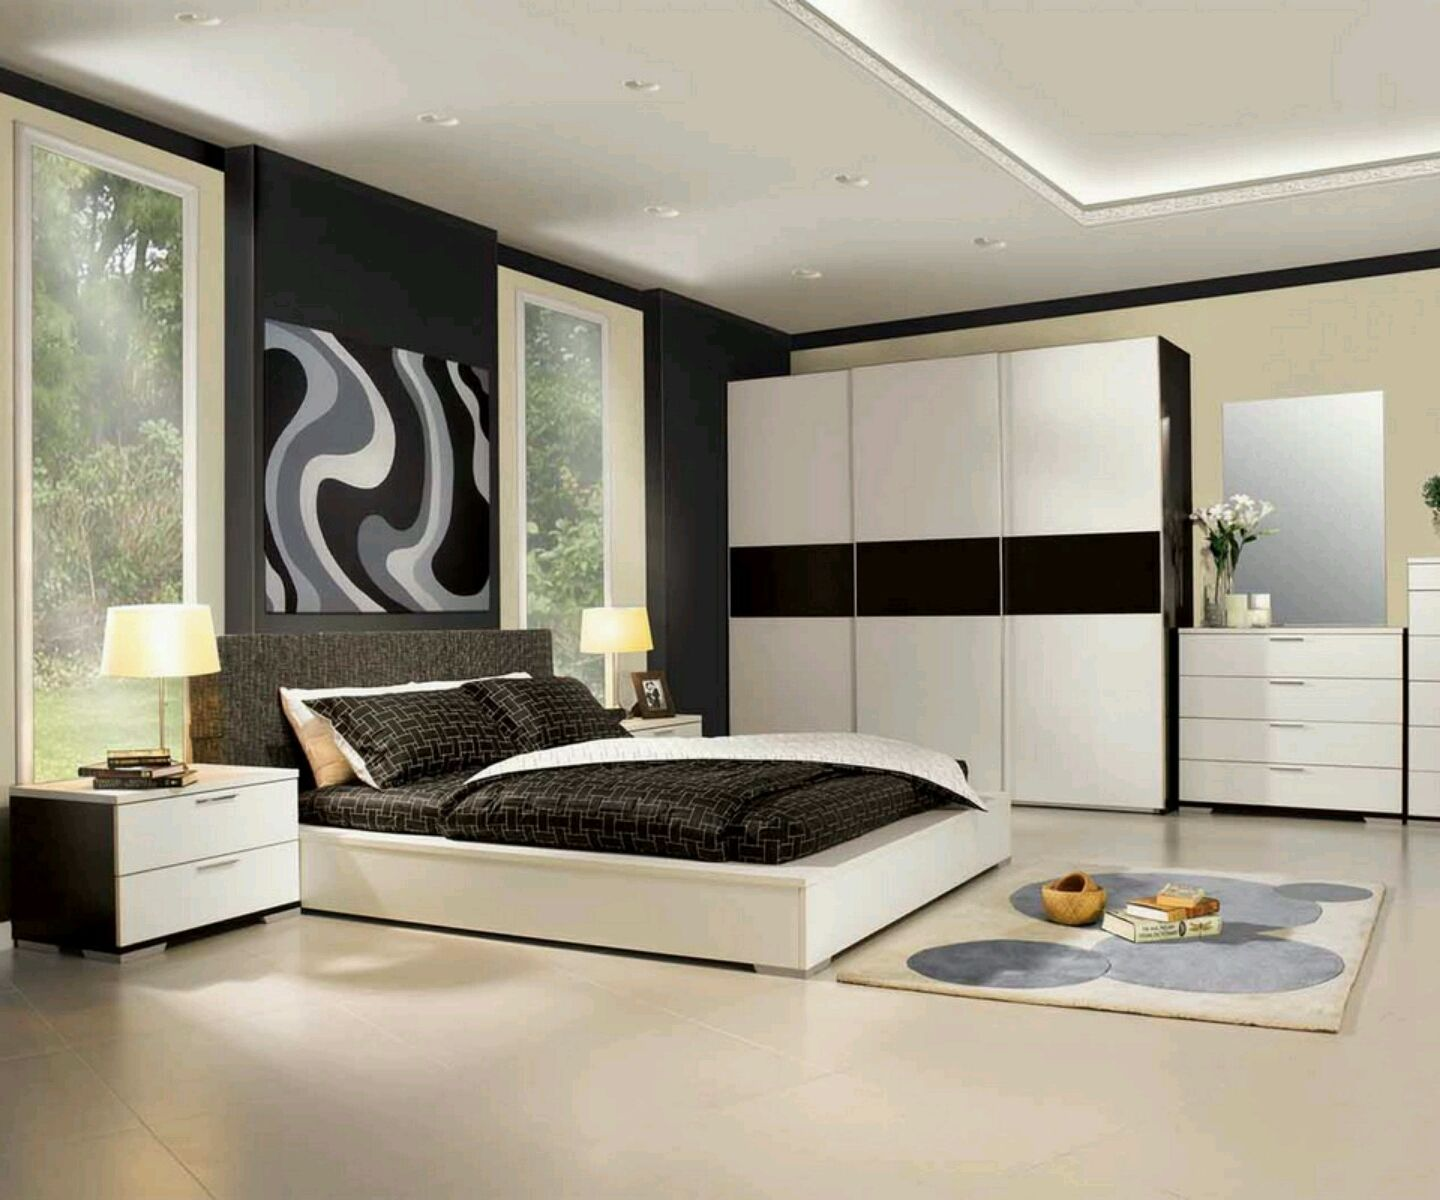 Modern Bedroom Furniture Design For More Pictures And Ideas Please Visit My Blog Http